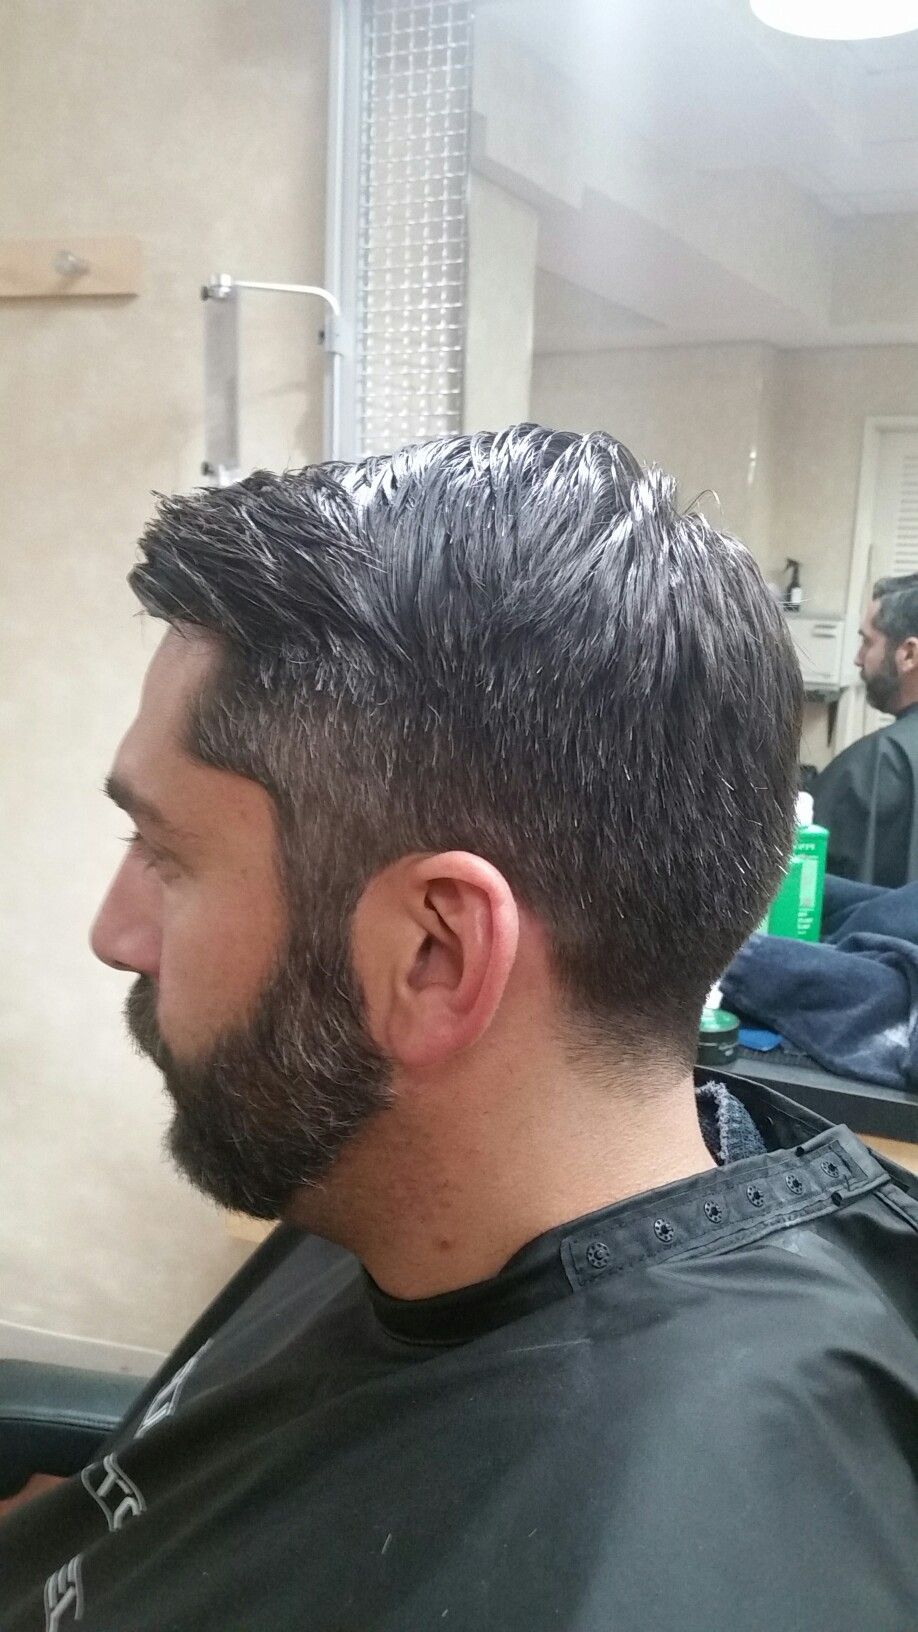 Medium Taper Fade Side Part With Beard Trim Supercuts 101 Summer Street Beard Trimming Taper Fade Beard